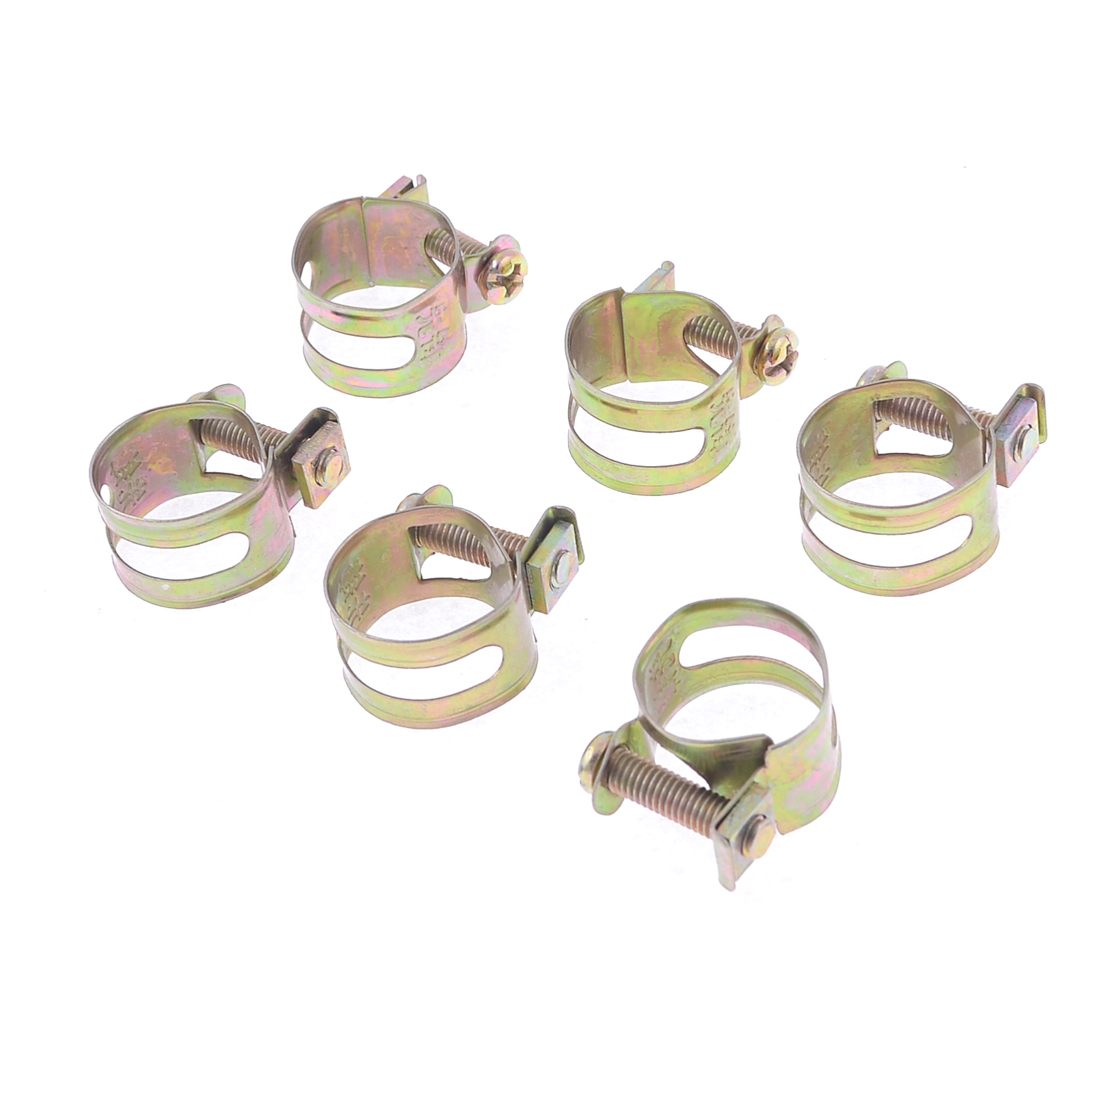 Unique Bargains Screw Tighten Design Water Pipe Hose Band Clamps 6 Pcs